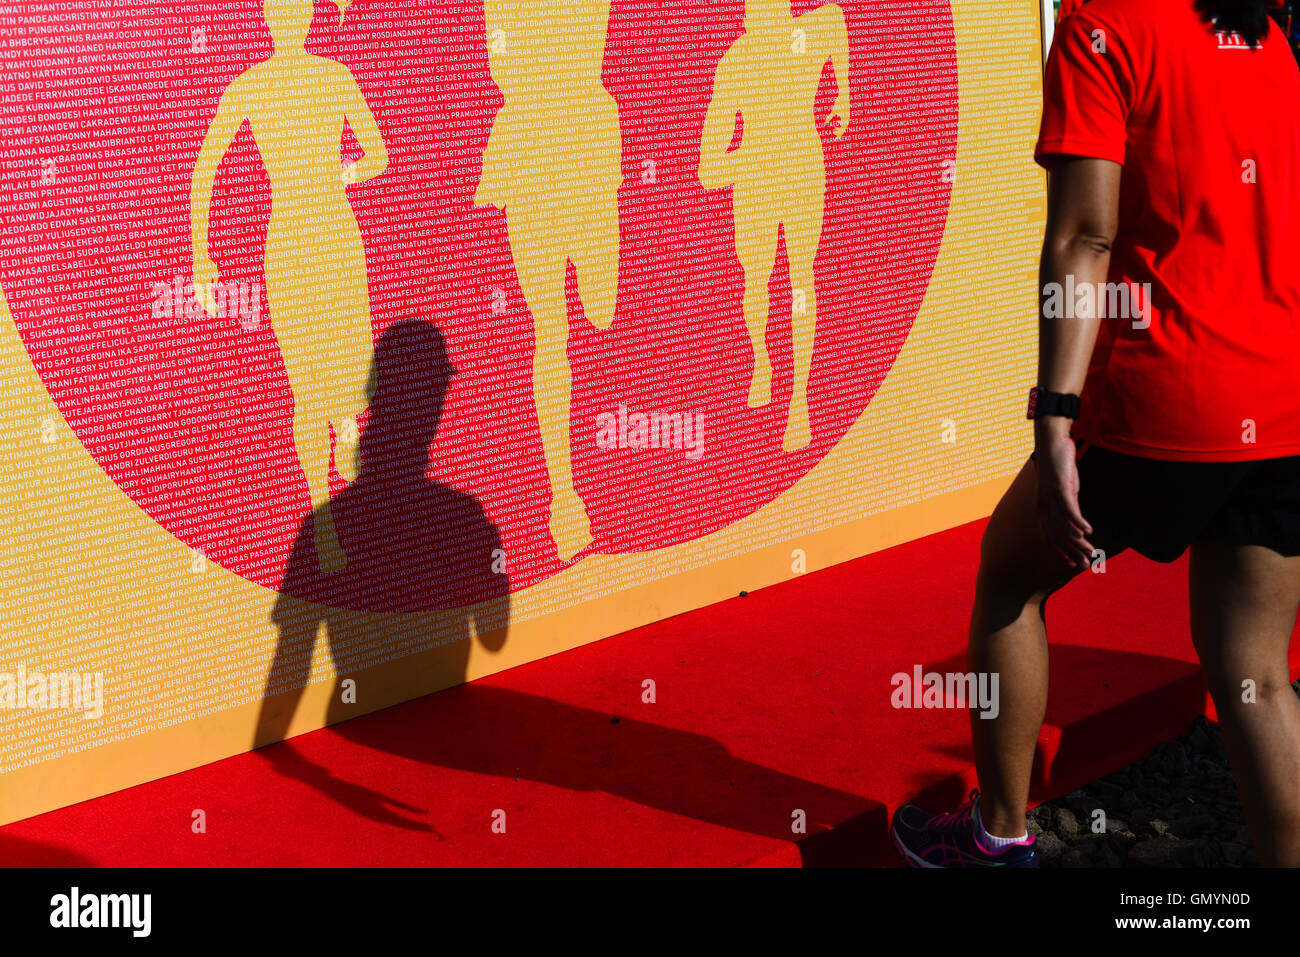 Shadow of a woman and giant poster illustrating runners in competition. - Stock Image